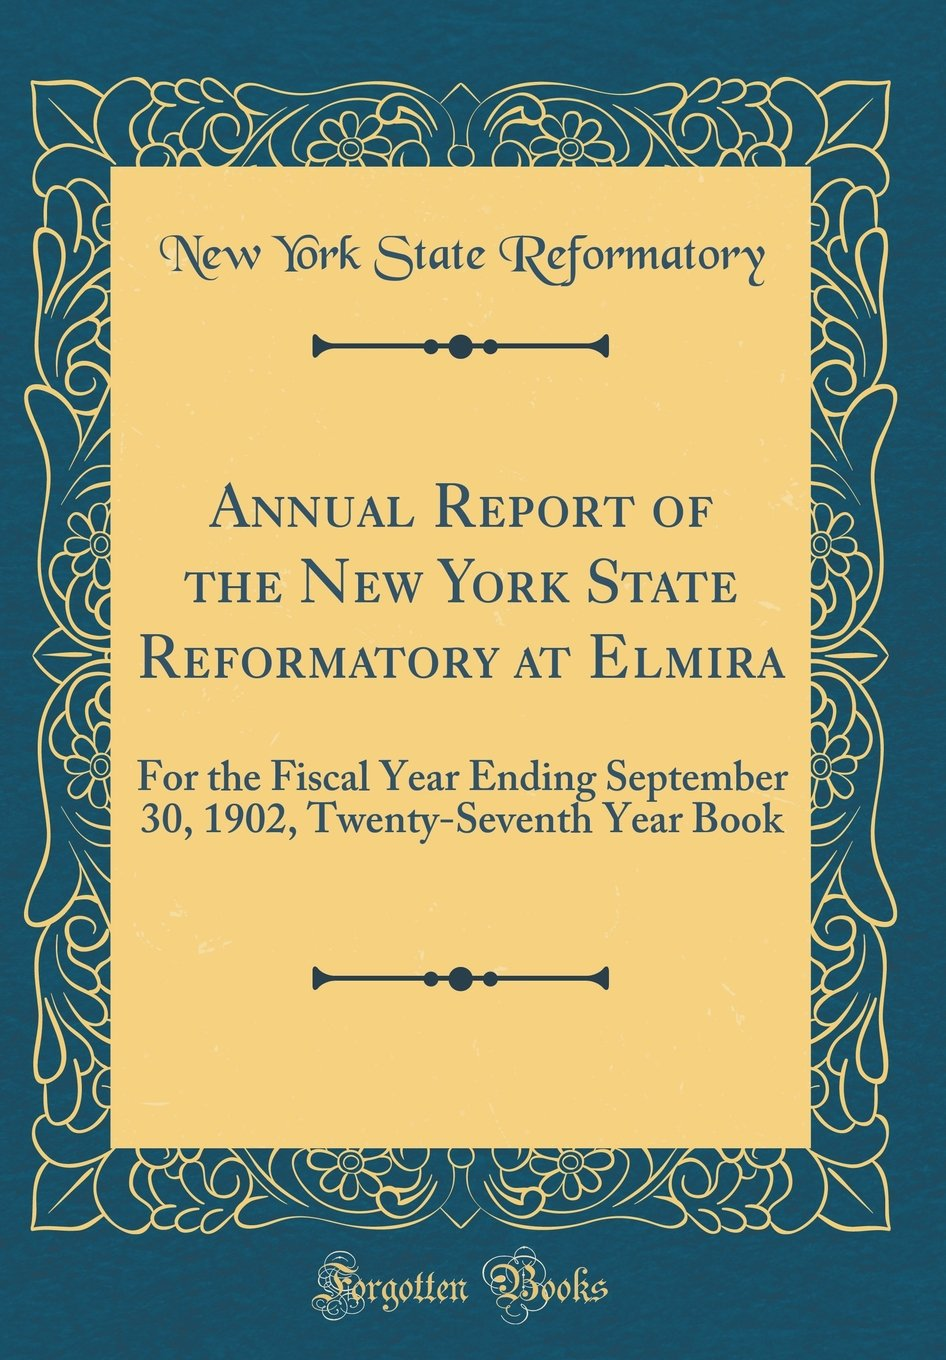 Annual Report of the New York State Reformatory at Elmira: For the Fiscal Year Ending September 30, 1902, Twenty-Seventh Year Book (Classic Reprint) PDF